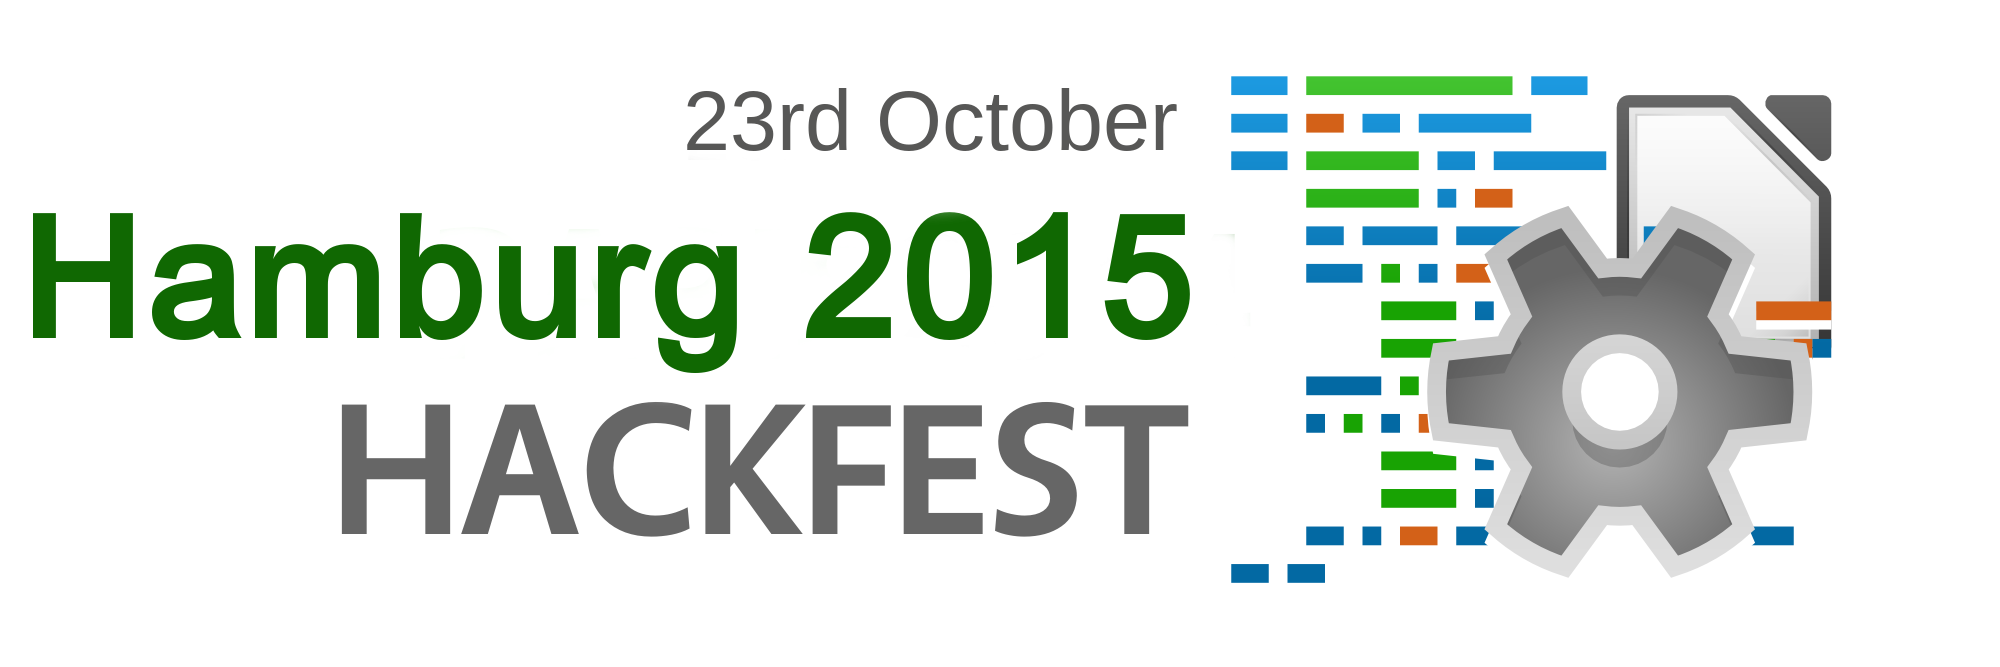 10 23Oct2015 HamburgHackfest2015